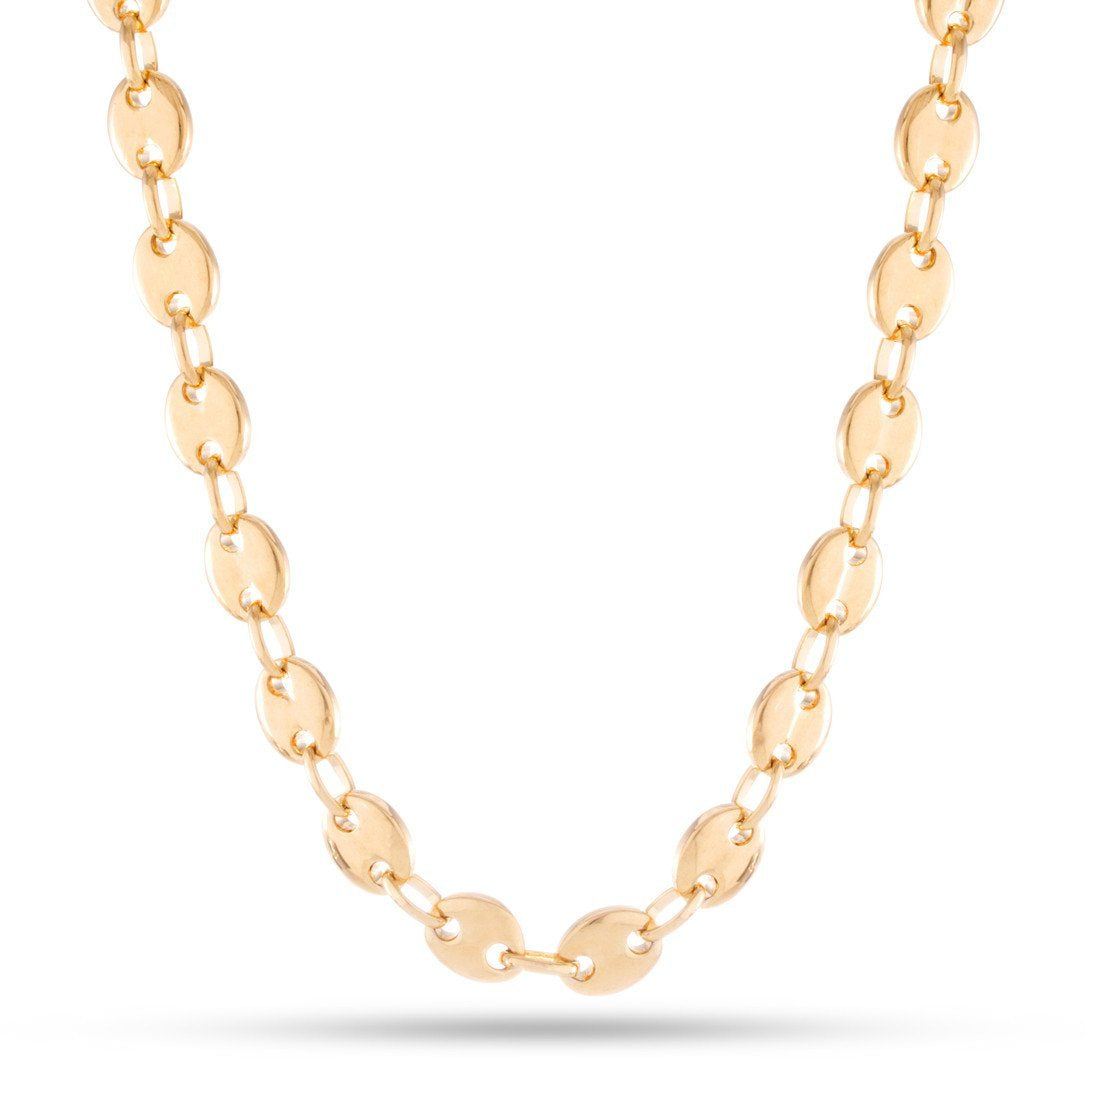 Chains - 11mm, 14K Gold Stainless Steel G-Link Chain -   jetcube